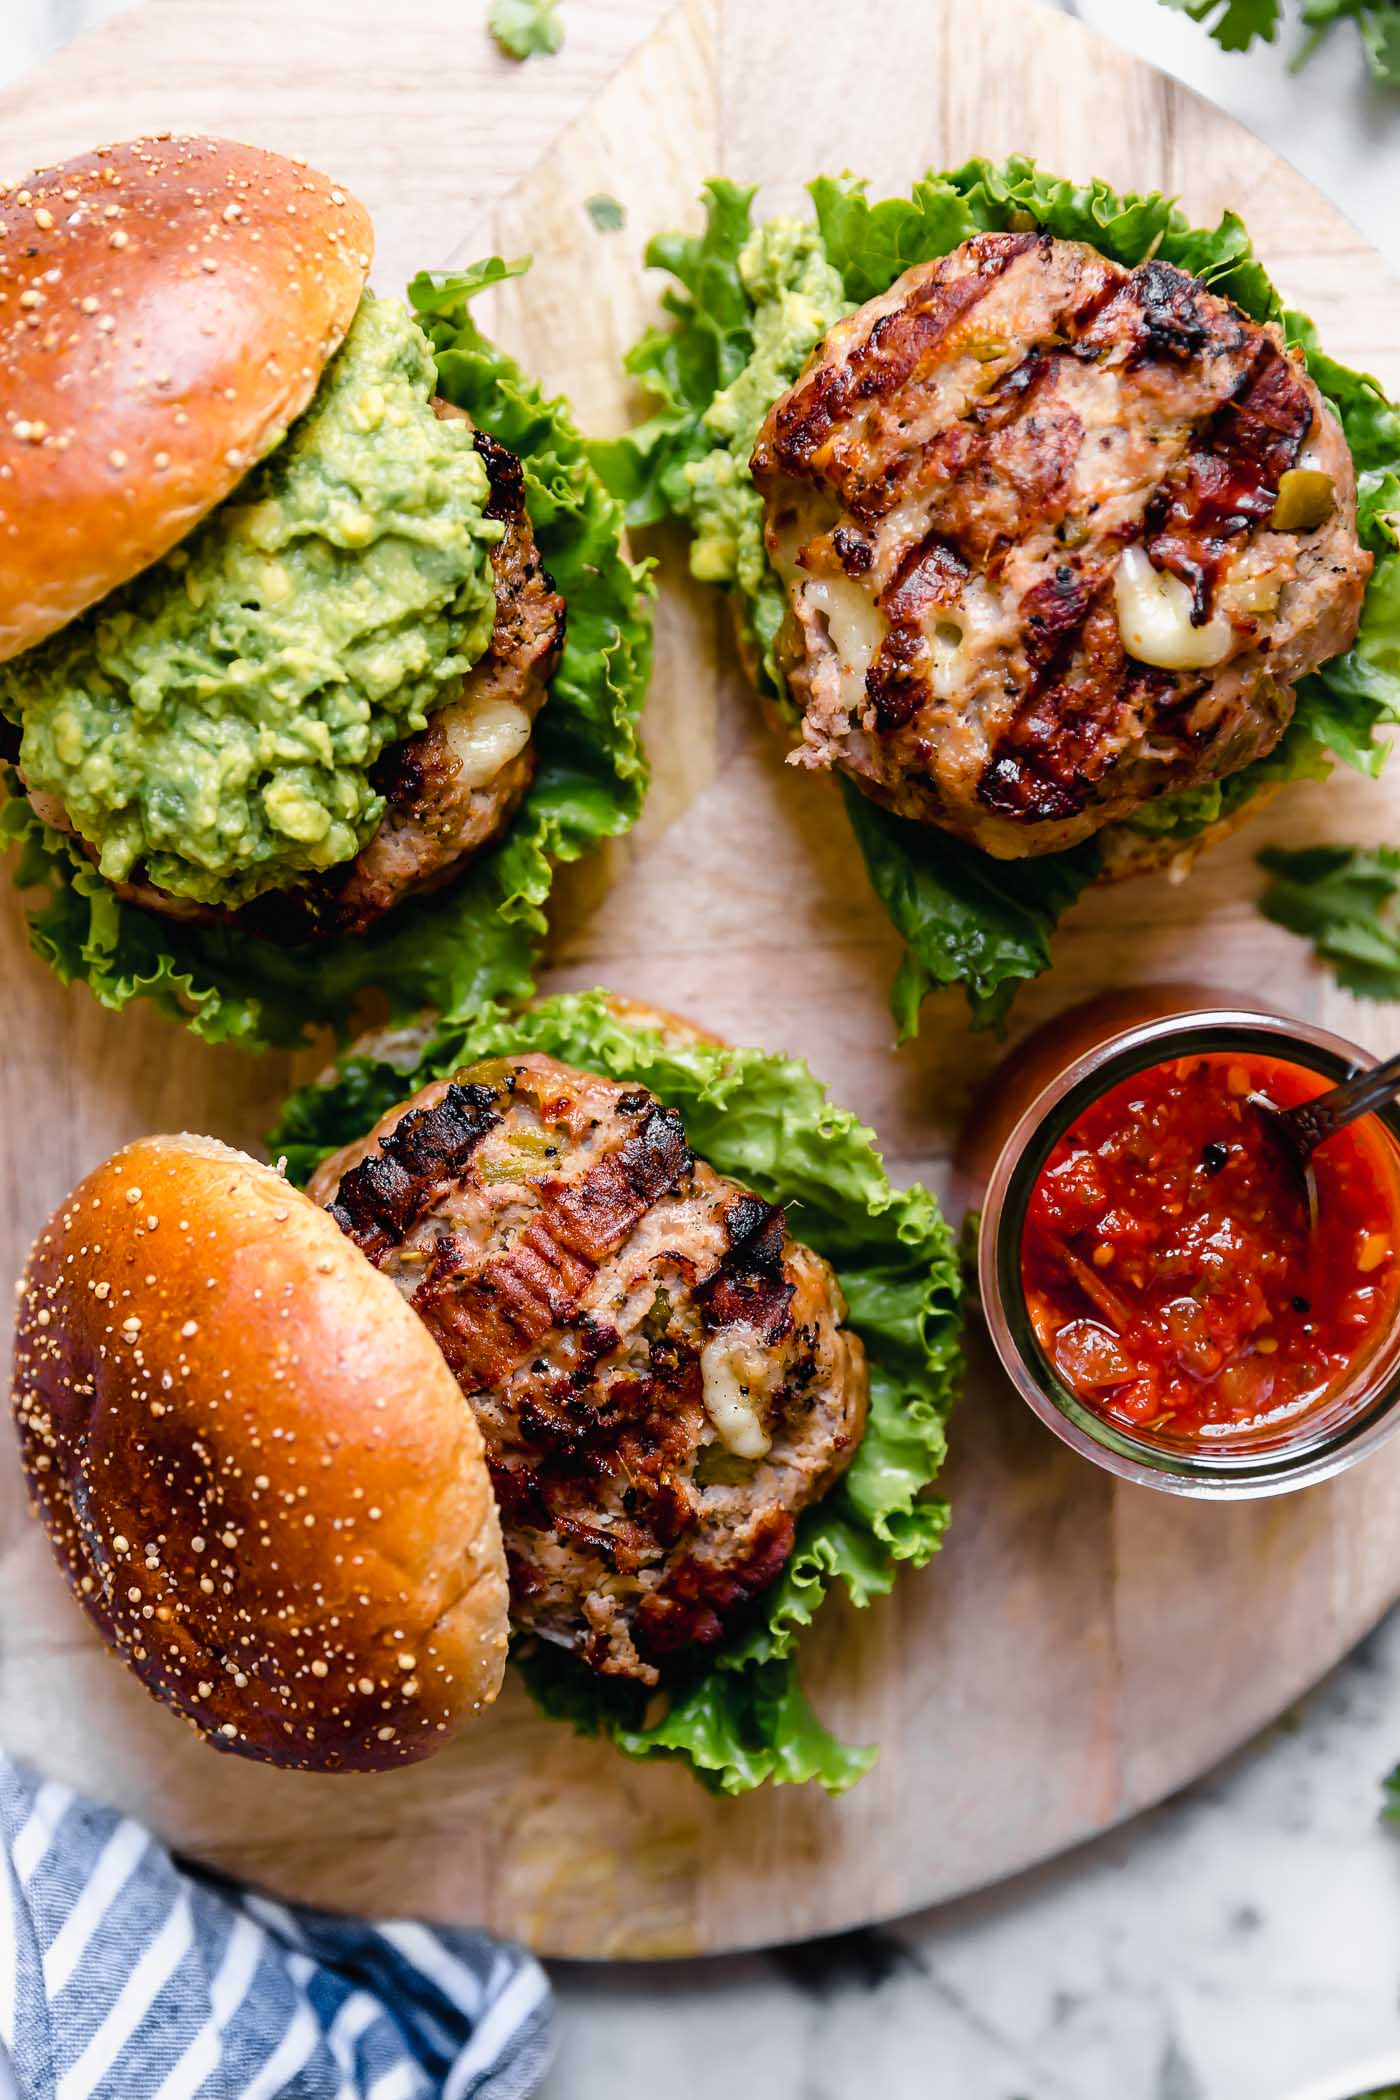 3 grilled stuffed turkey burger patties on a small white plate. The burgers have nice grill marks and are oozing with melted pepper jack cheese. Surrounding the plate are a jar of salsa, a brick of Tillamook pepper jack cheese, fresh cilantro, and a blue striped linen.